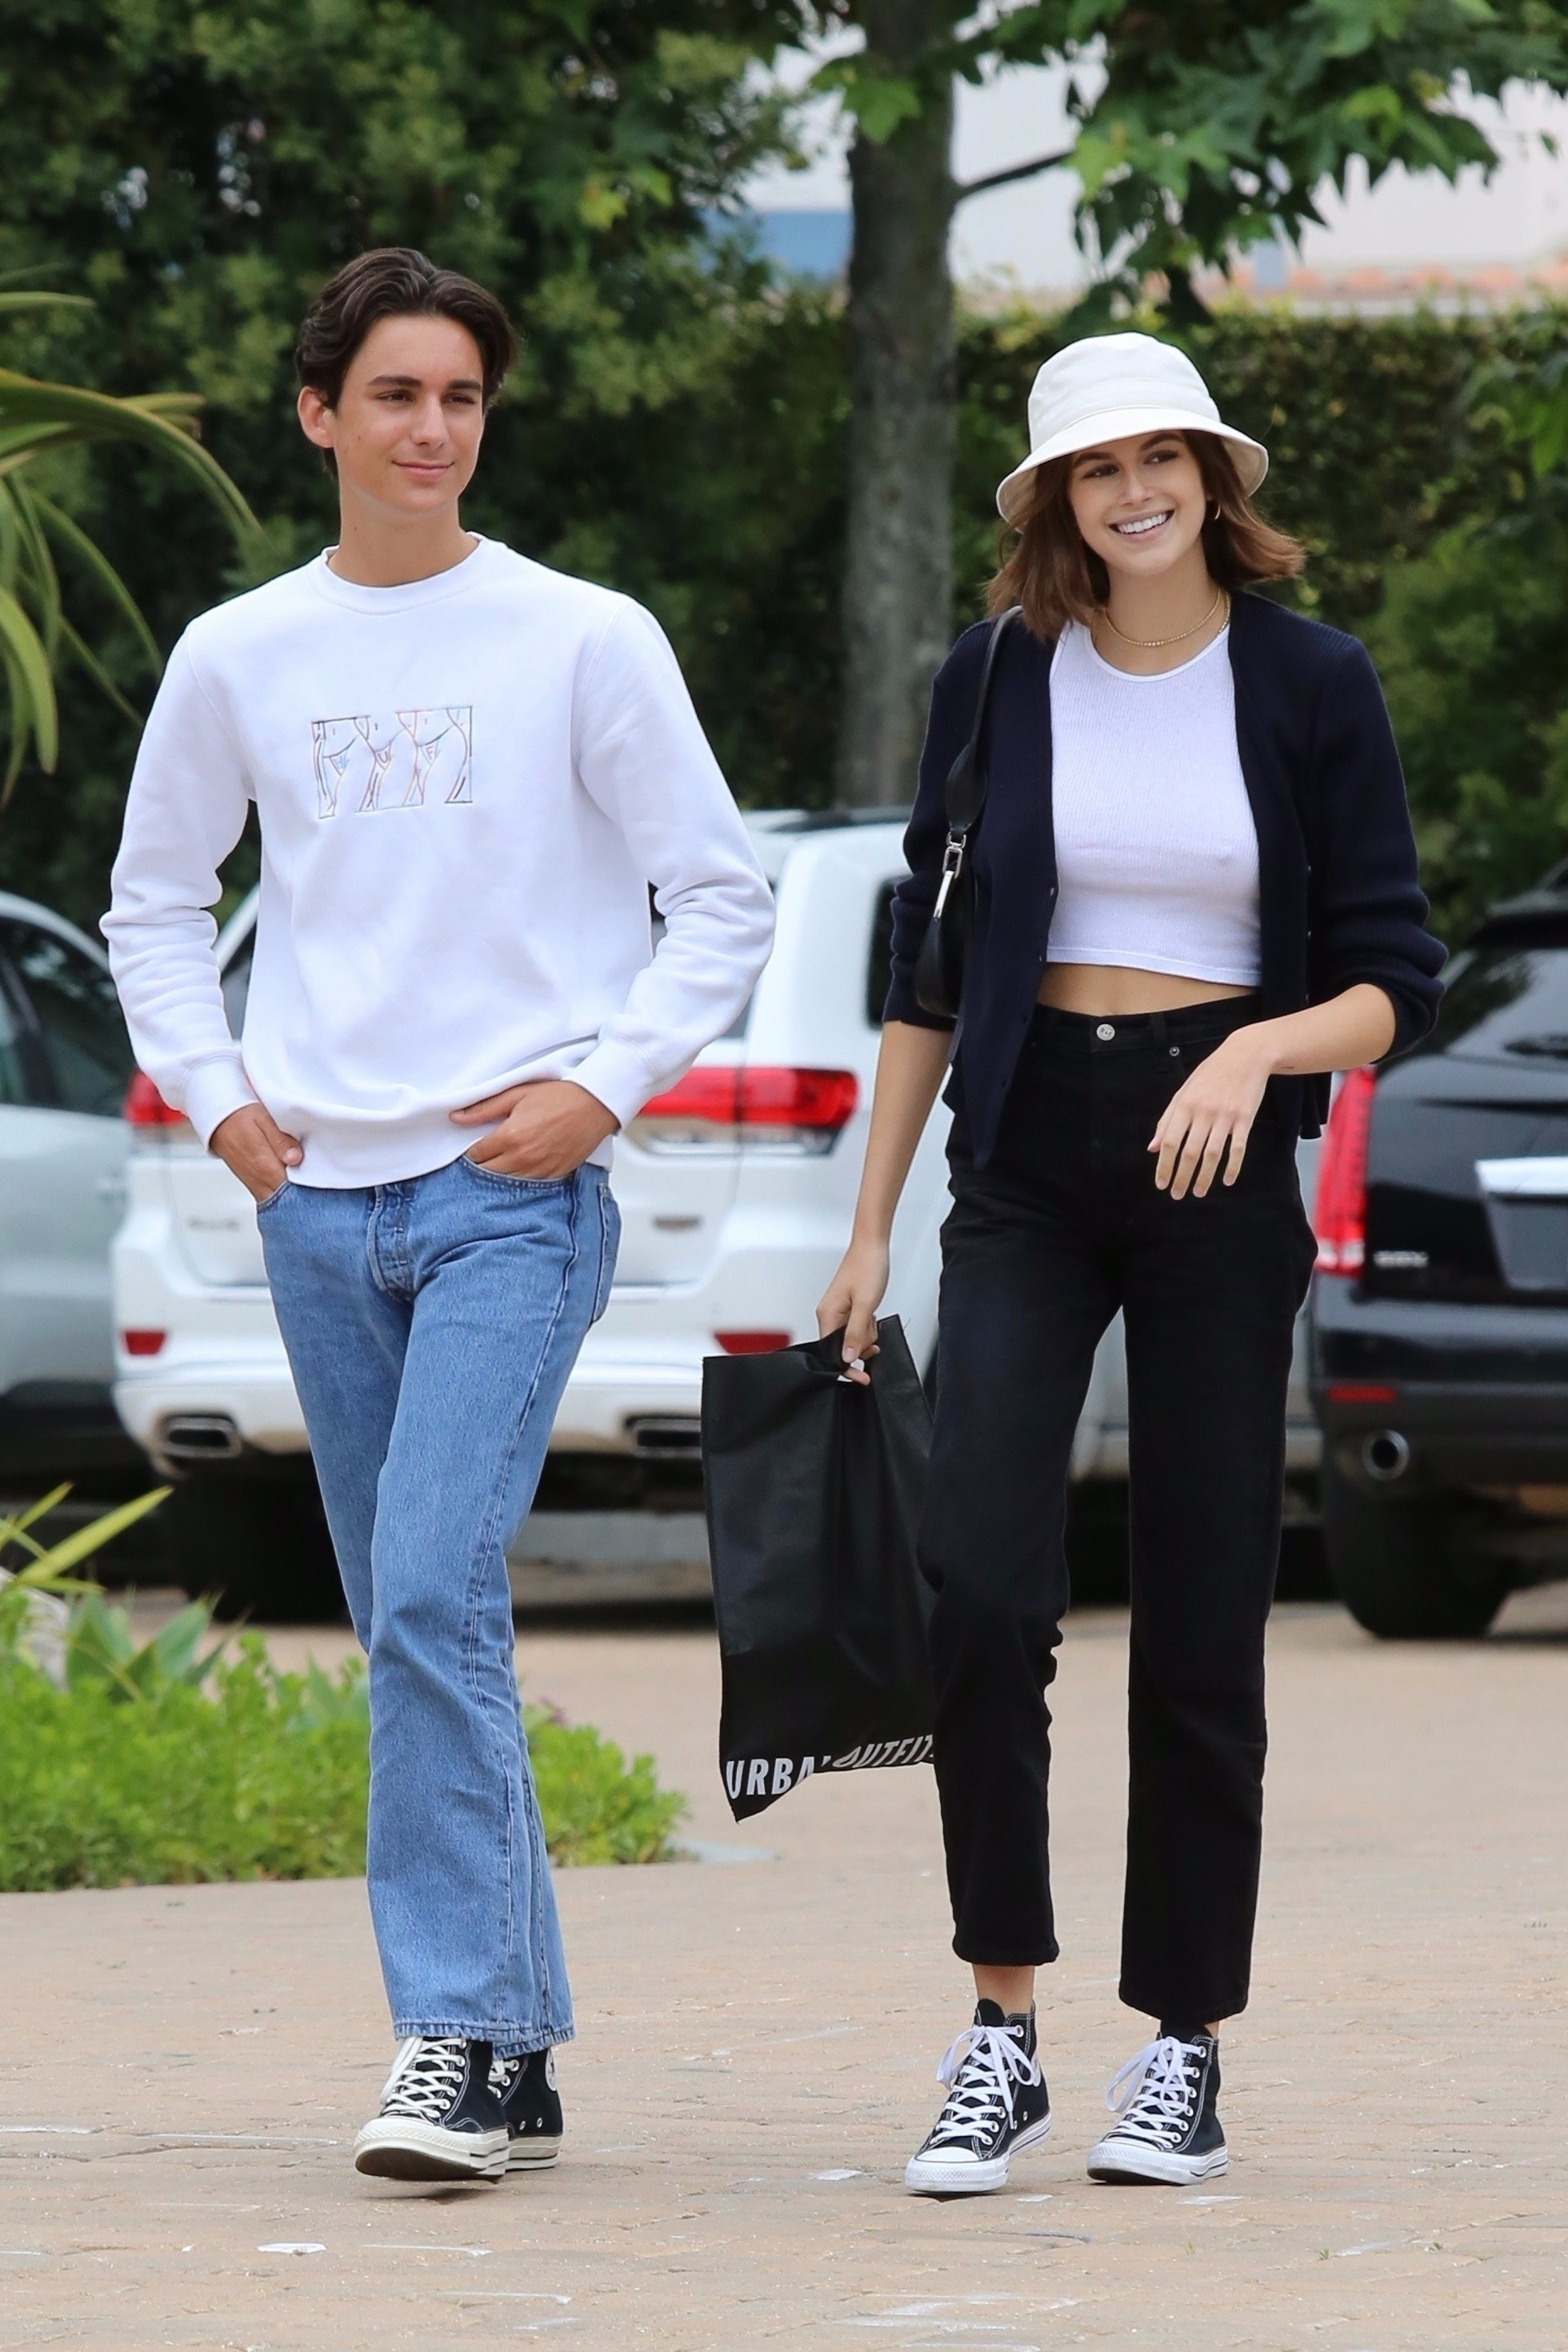 788d49c18 Kaia Gerber's Bucket Hat Look Makes A Case For The Controversial Trend